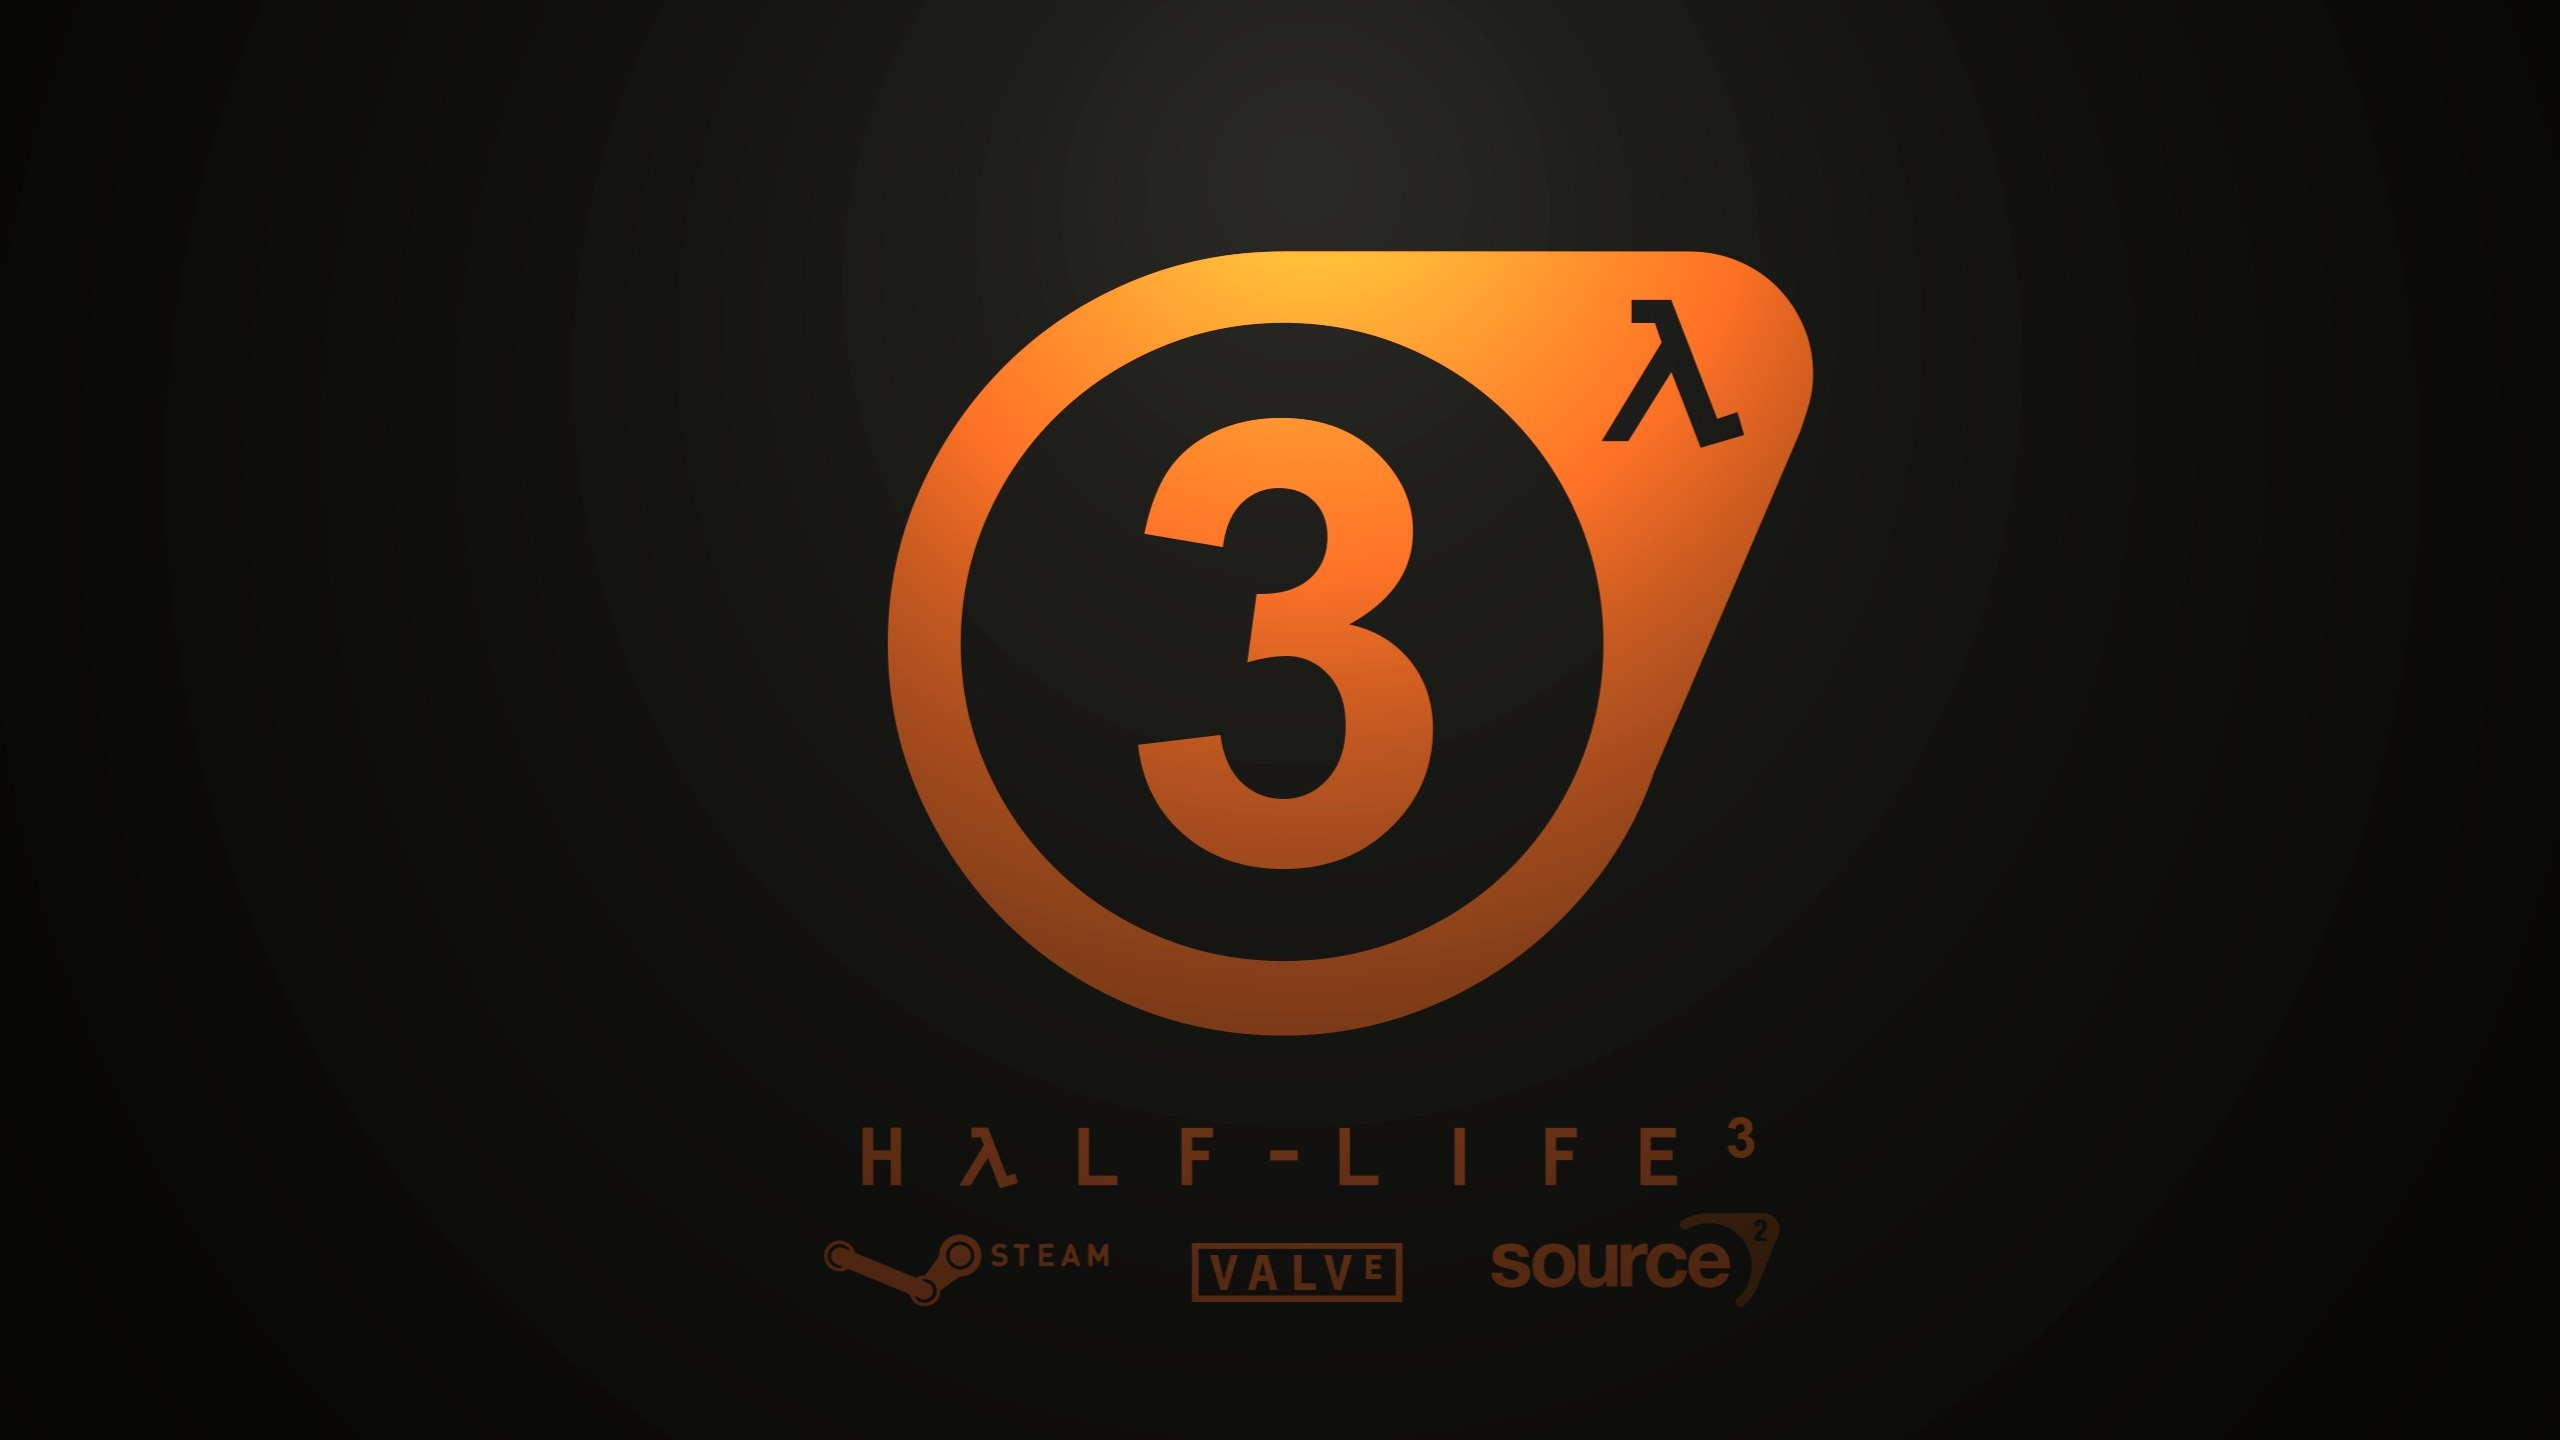 2560x1440 Half Life 3 - This HD Half Life 3 wallpaper is based on Half-Life